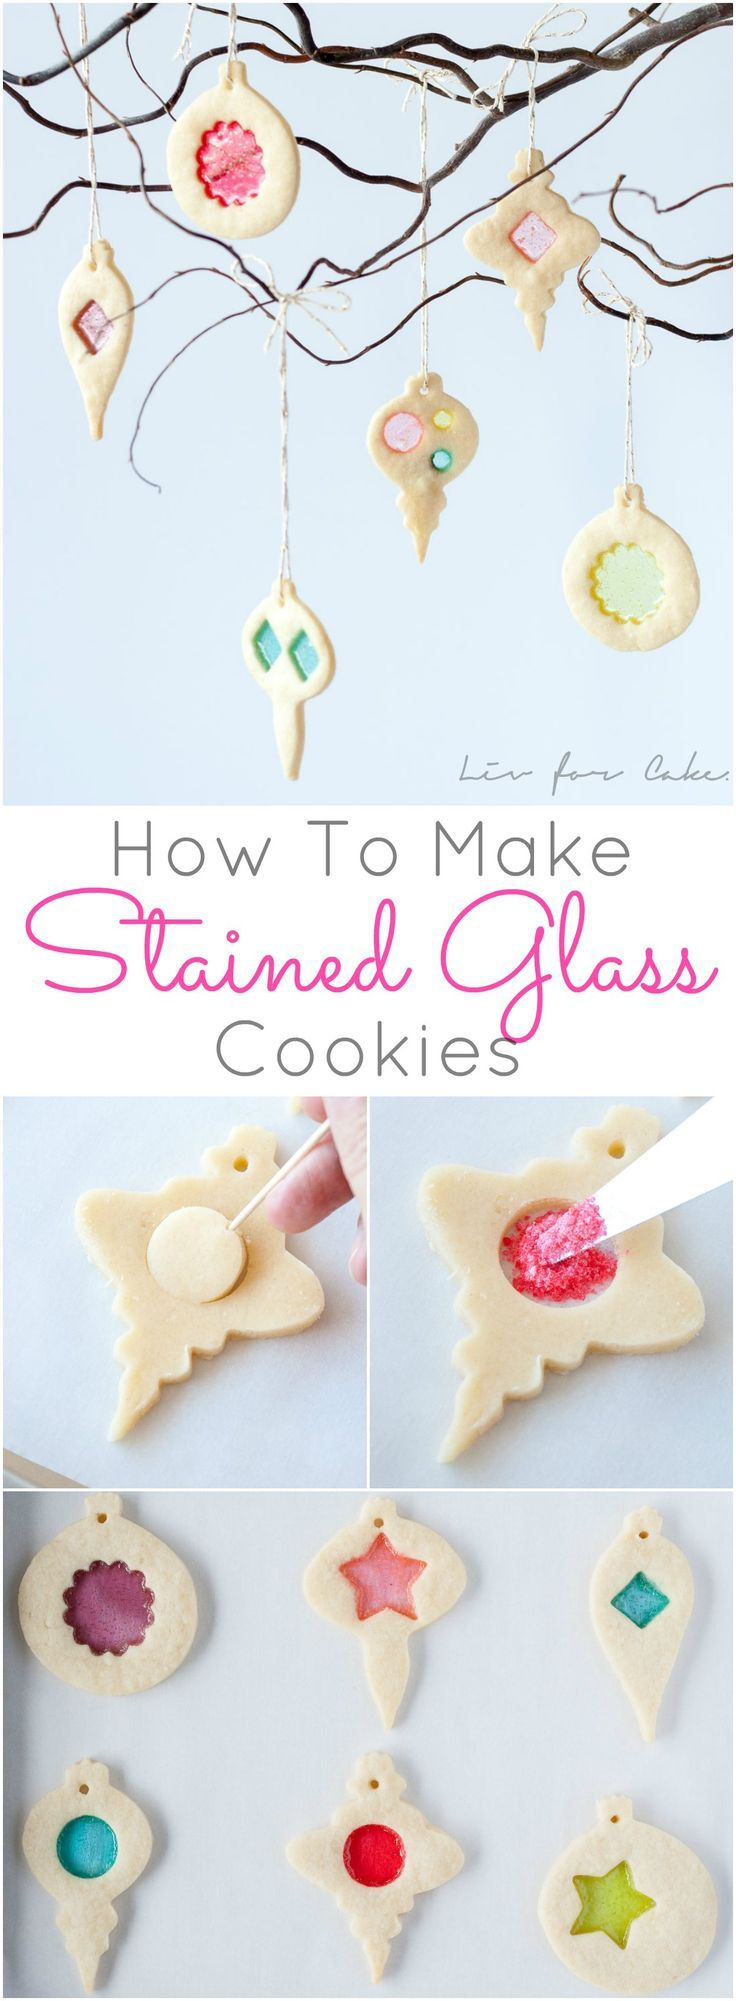 Cookie and candy all in one! Learn how to make stunning stained glass cookies with this detailed tutorial. Perfect for holiday cookie exchanges or for hanging on your tree!